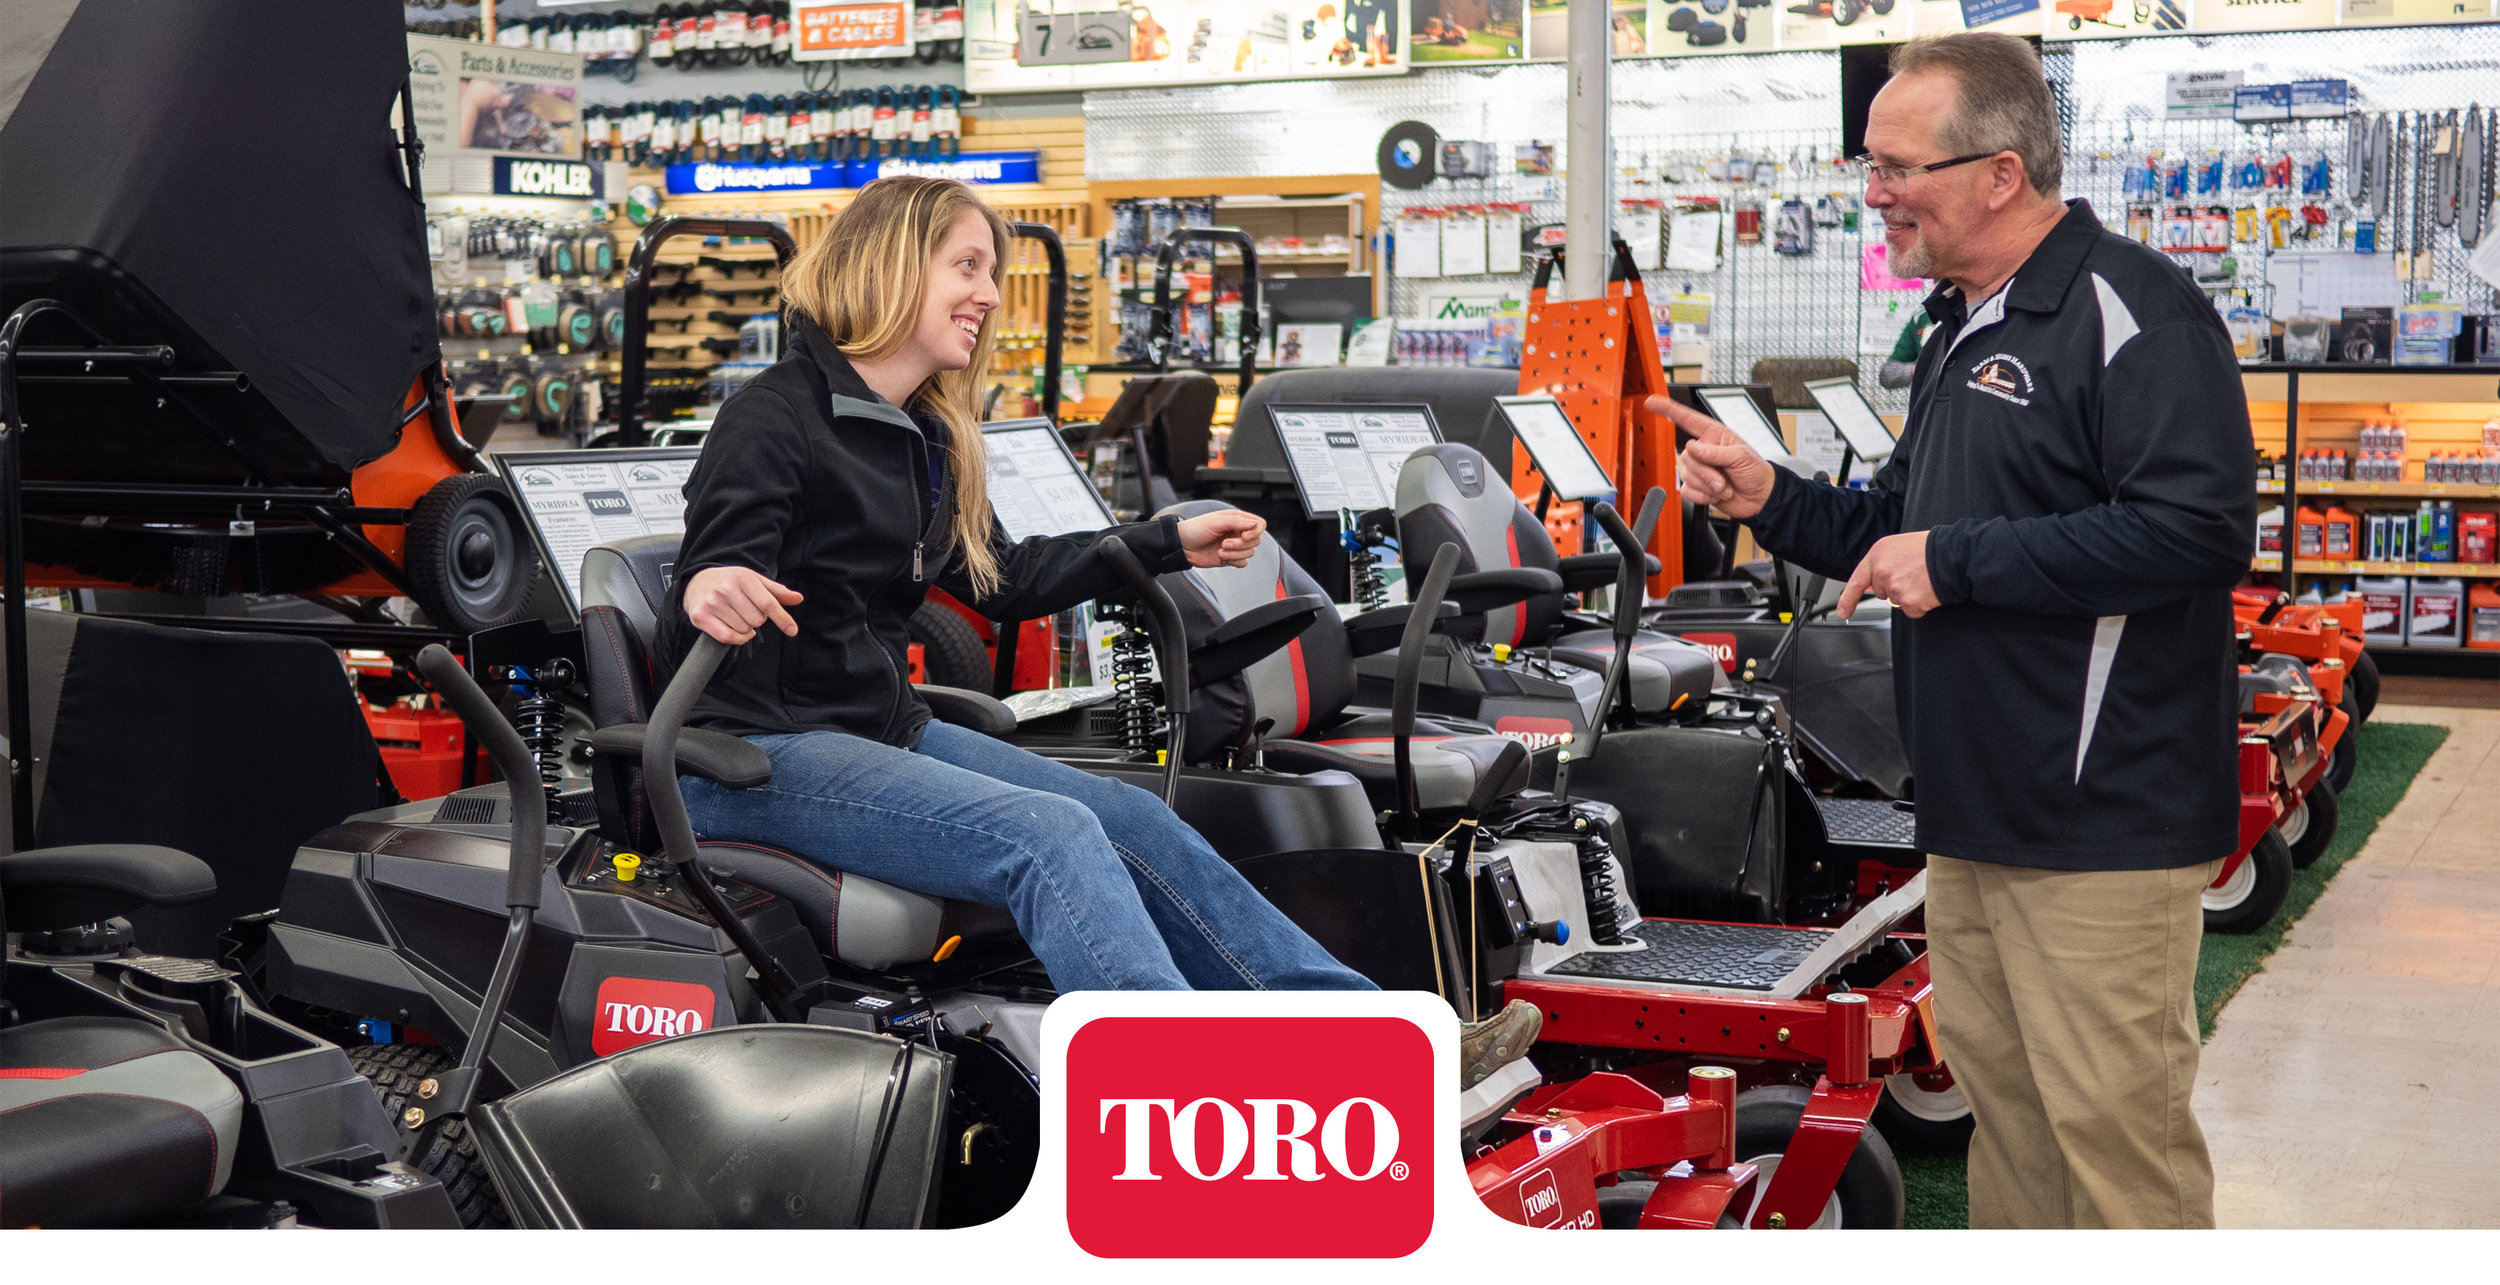 Toro lawn mowers for sale at Farm & Home Hardware.